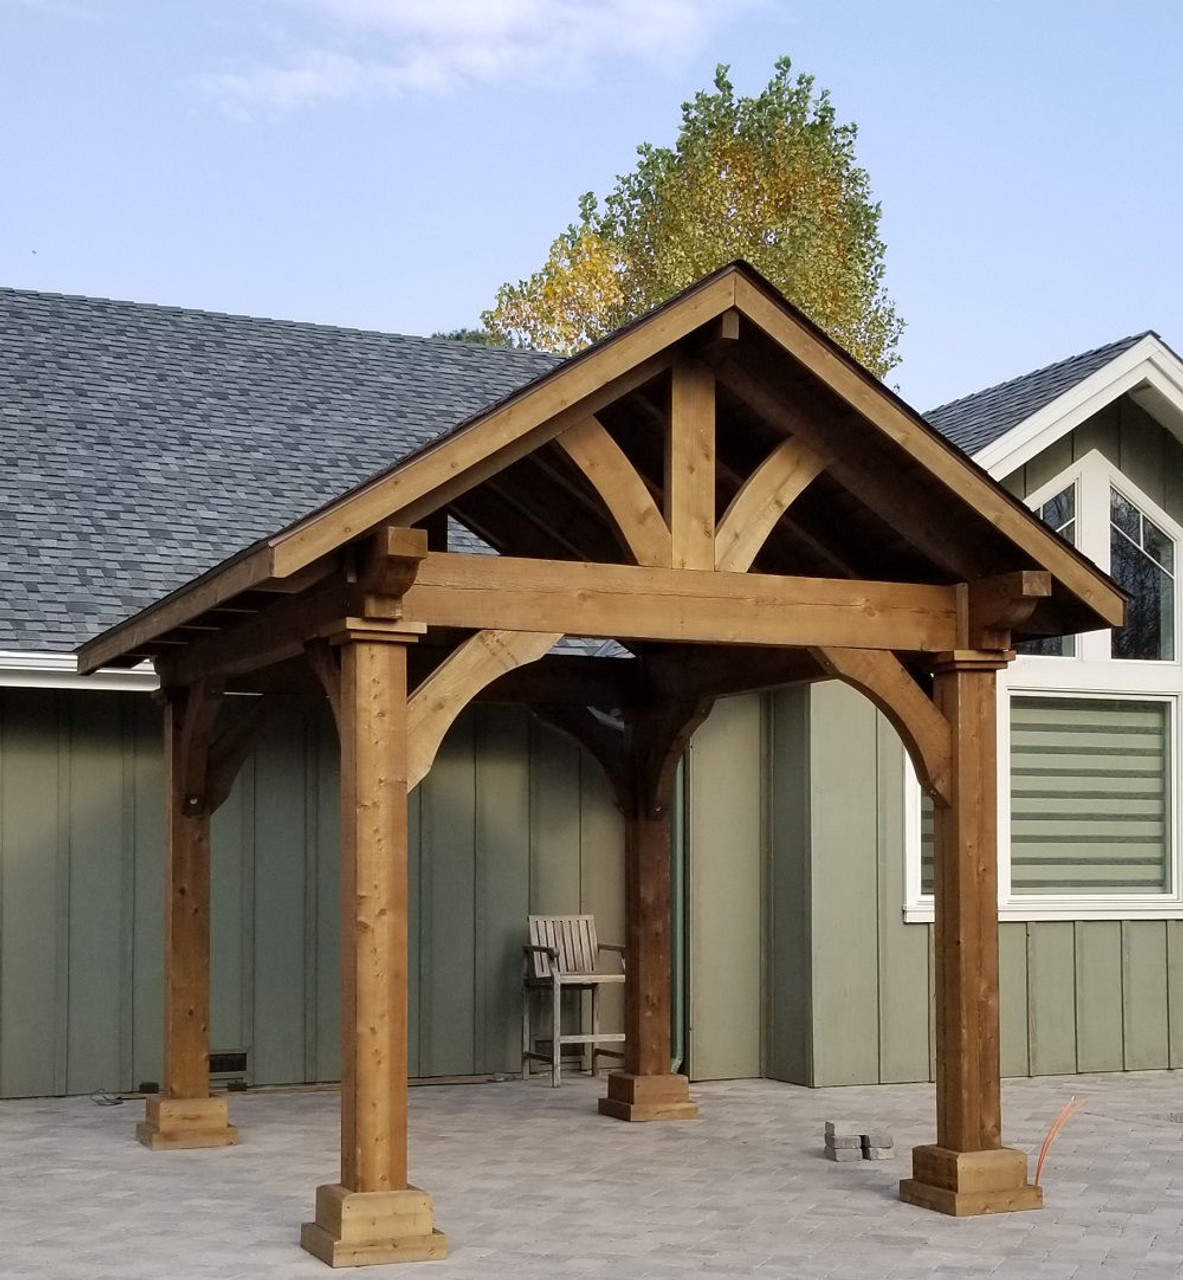 10x12 Grand Cedar Pavilion with Walnut Stain, Gardnerville, NV